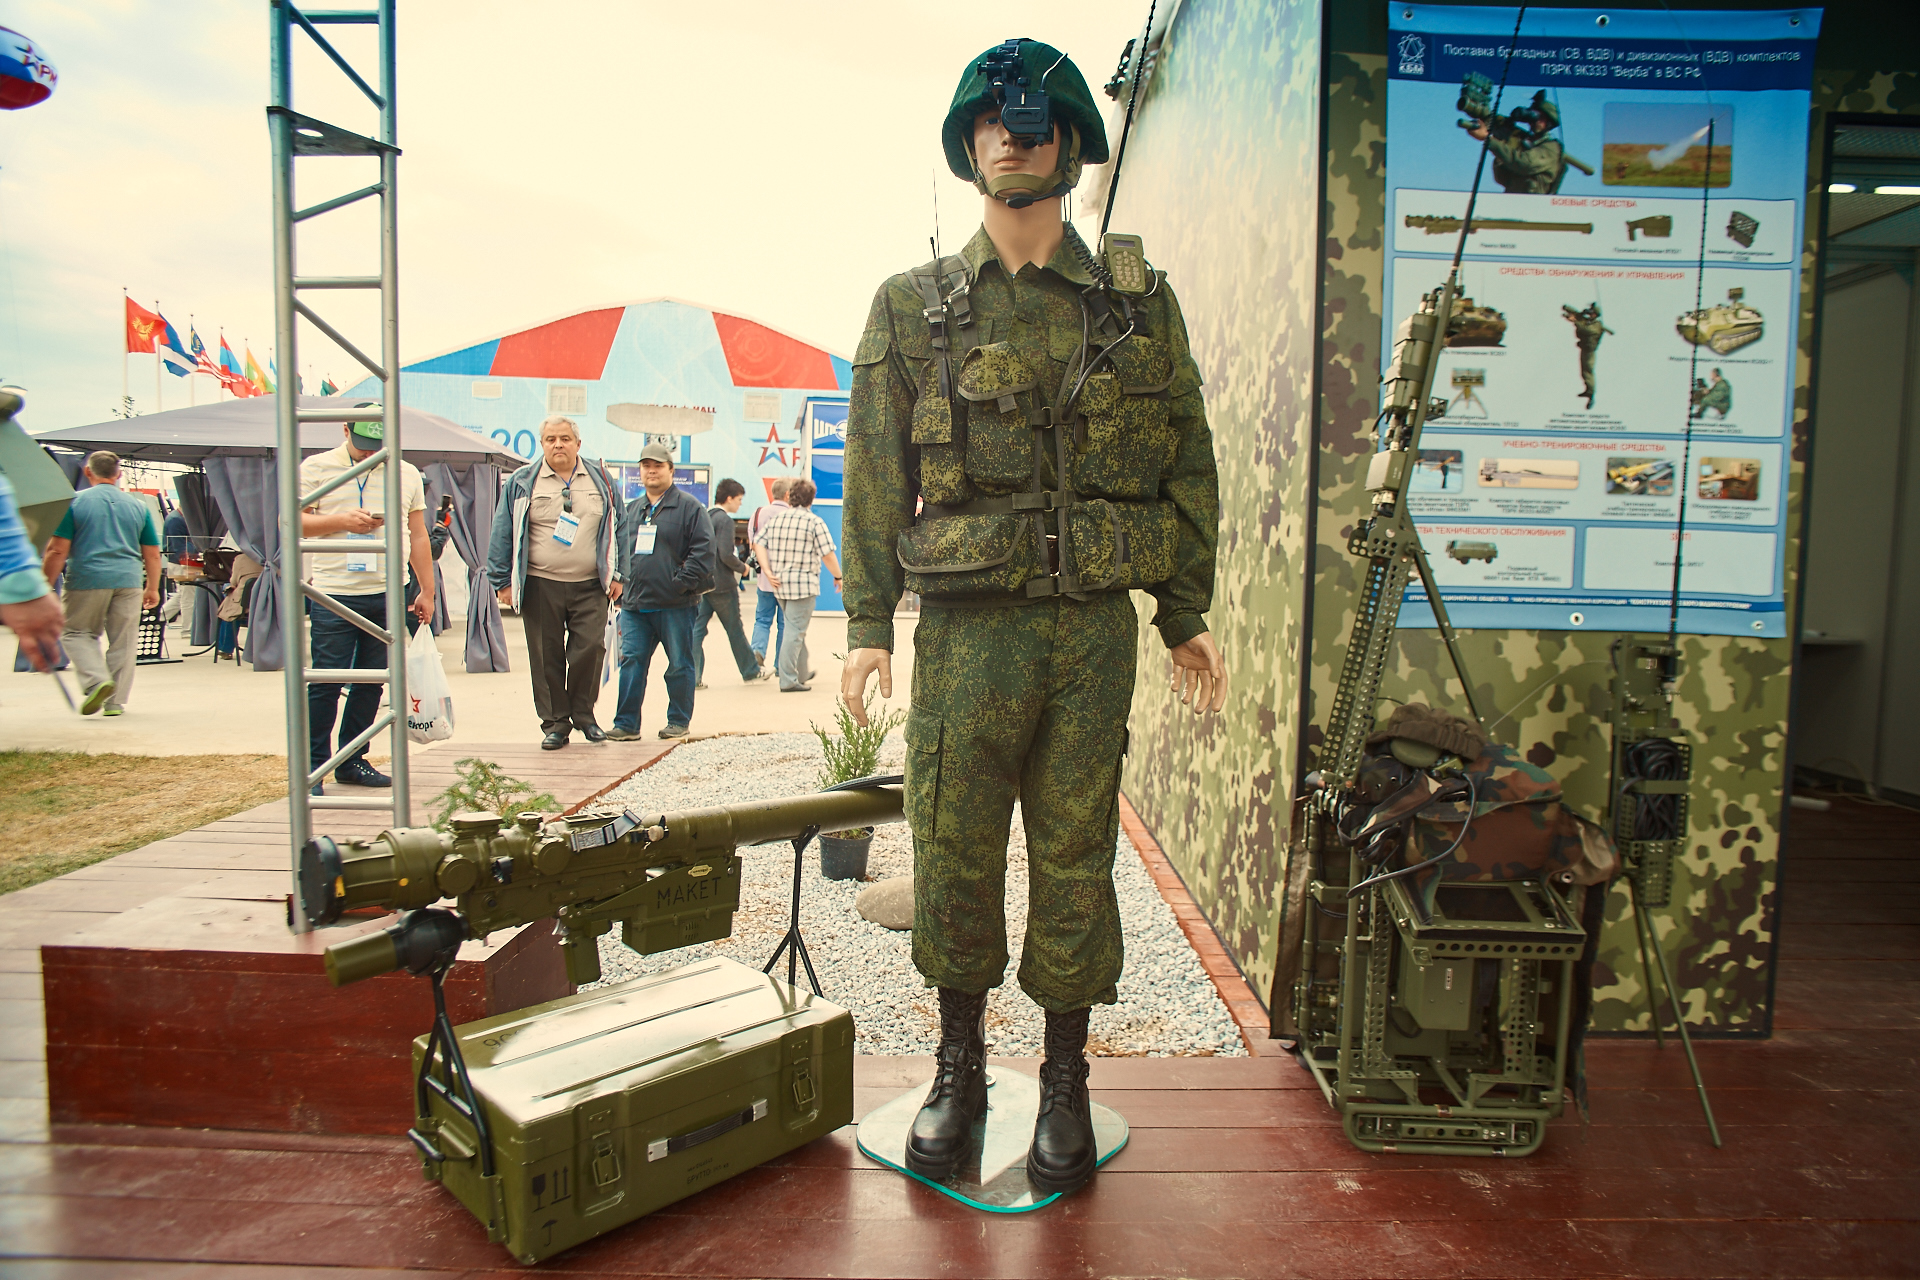 Russian Military Photos and Videos #2 - Page 37 0_a3886_7768c0cd_orig